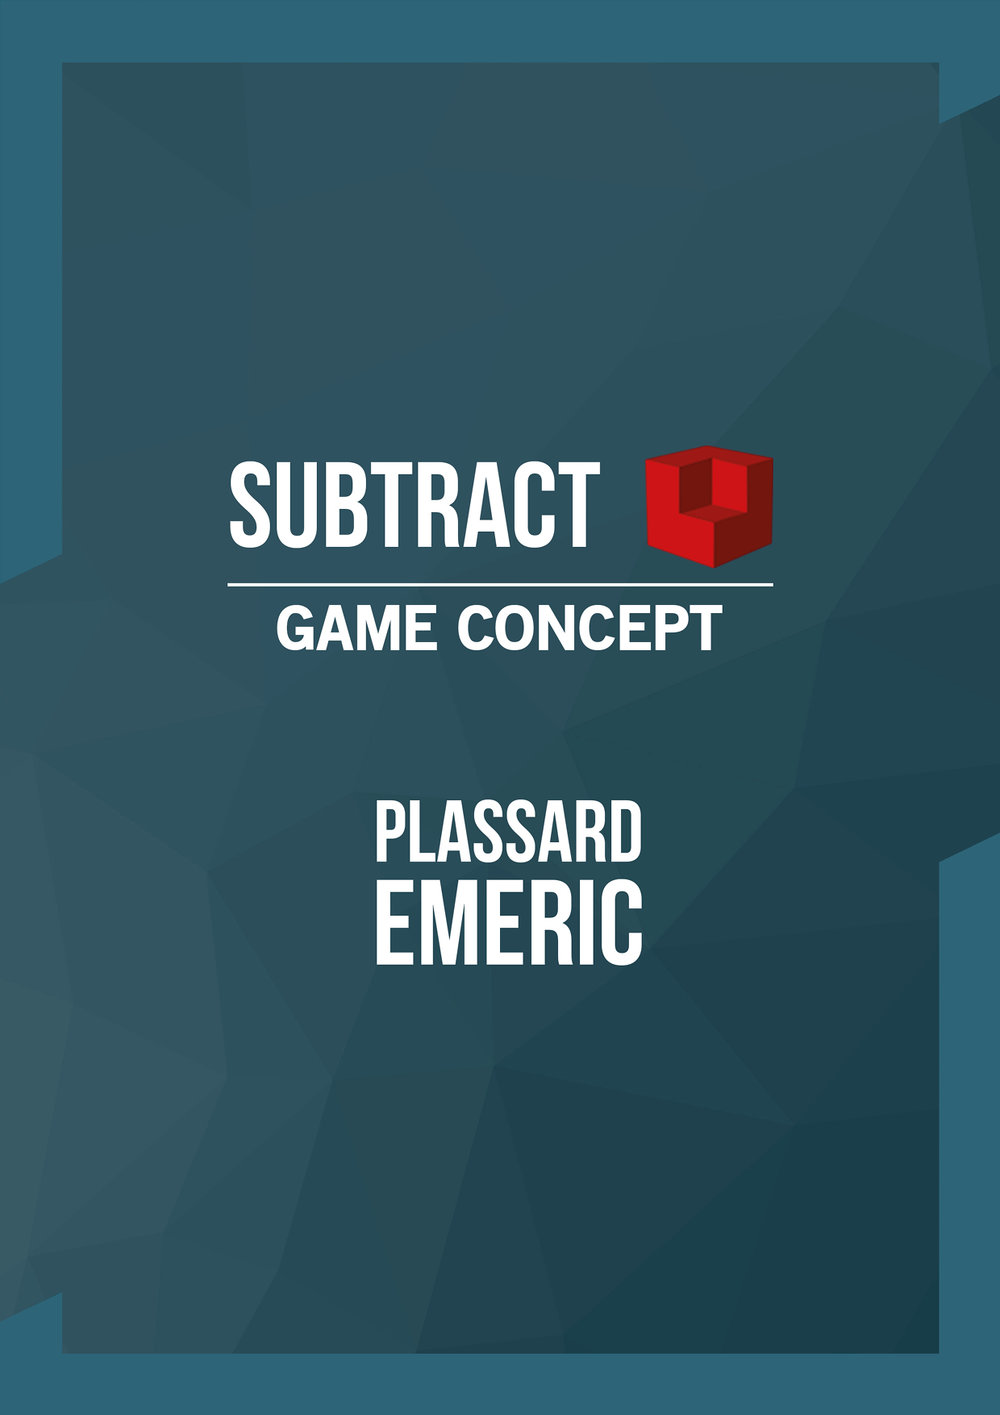 Substract_Concept.jpg